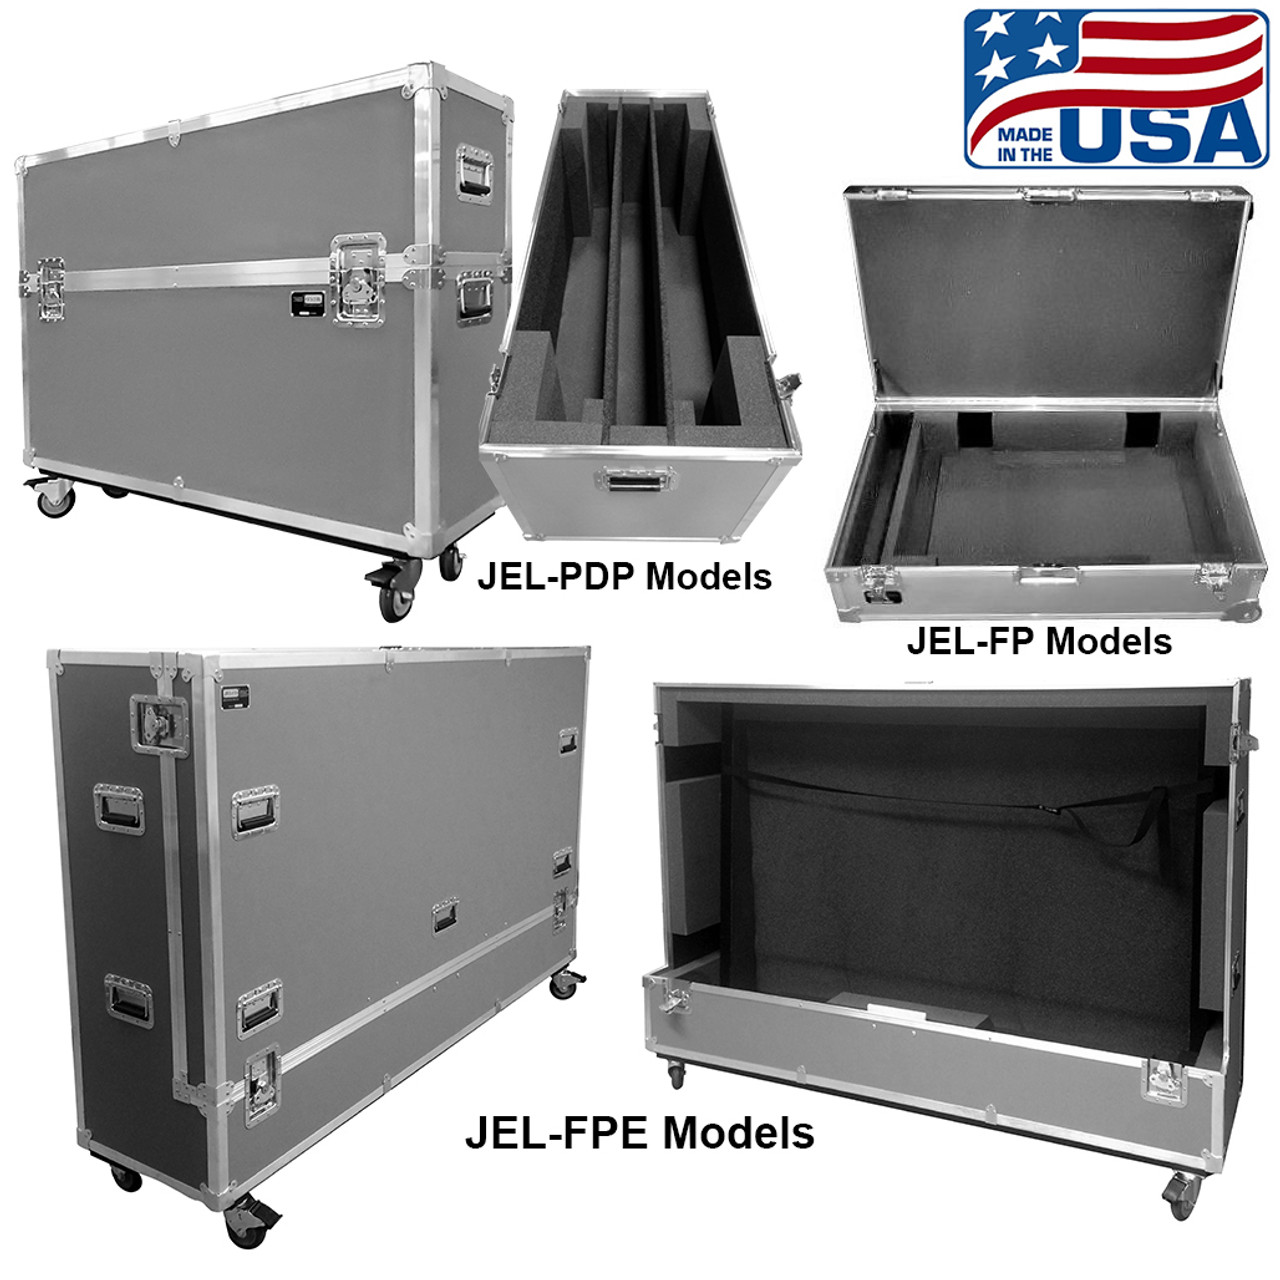 ATA shipping case for single and multiple displays